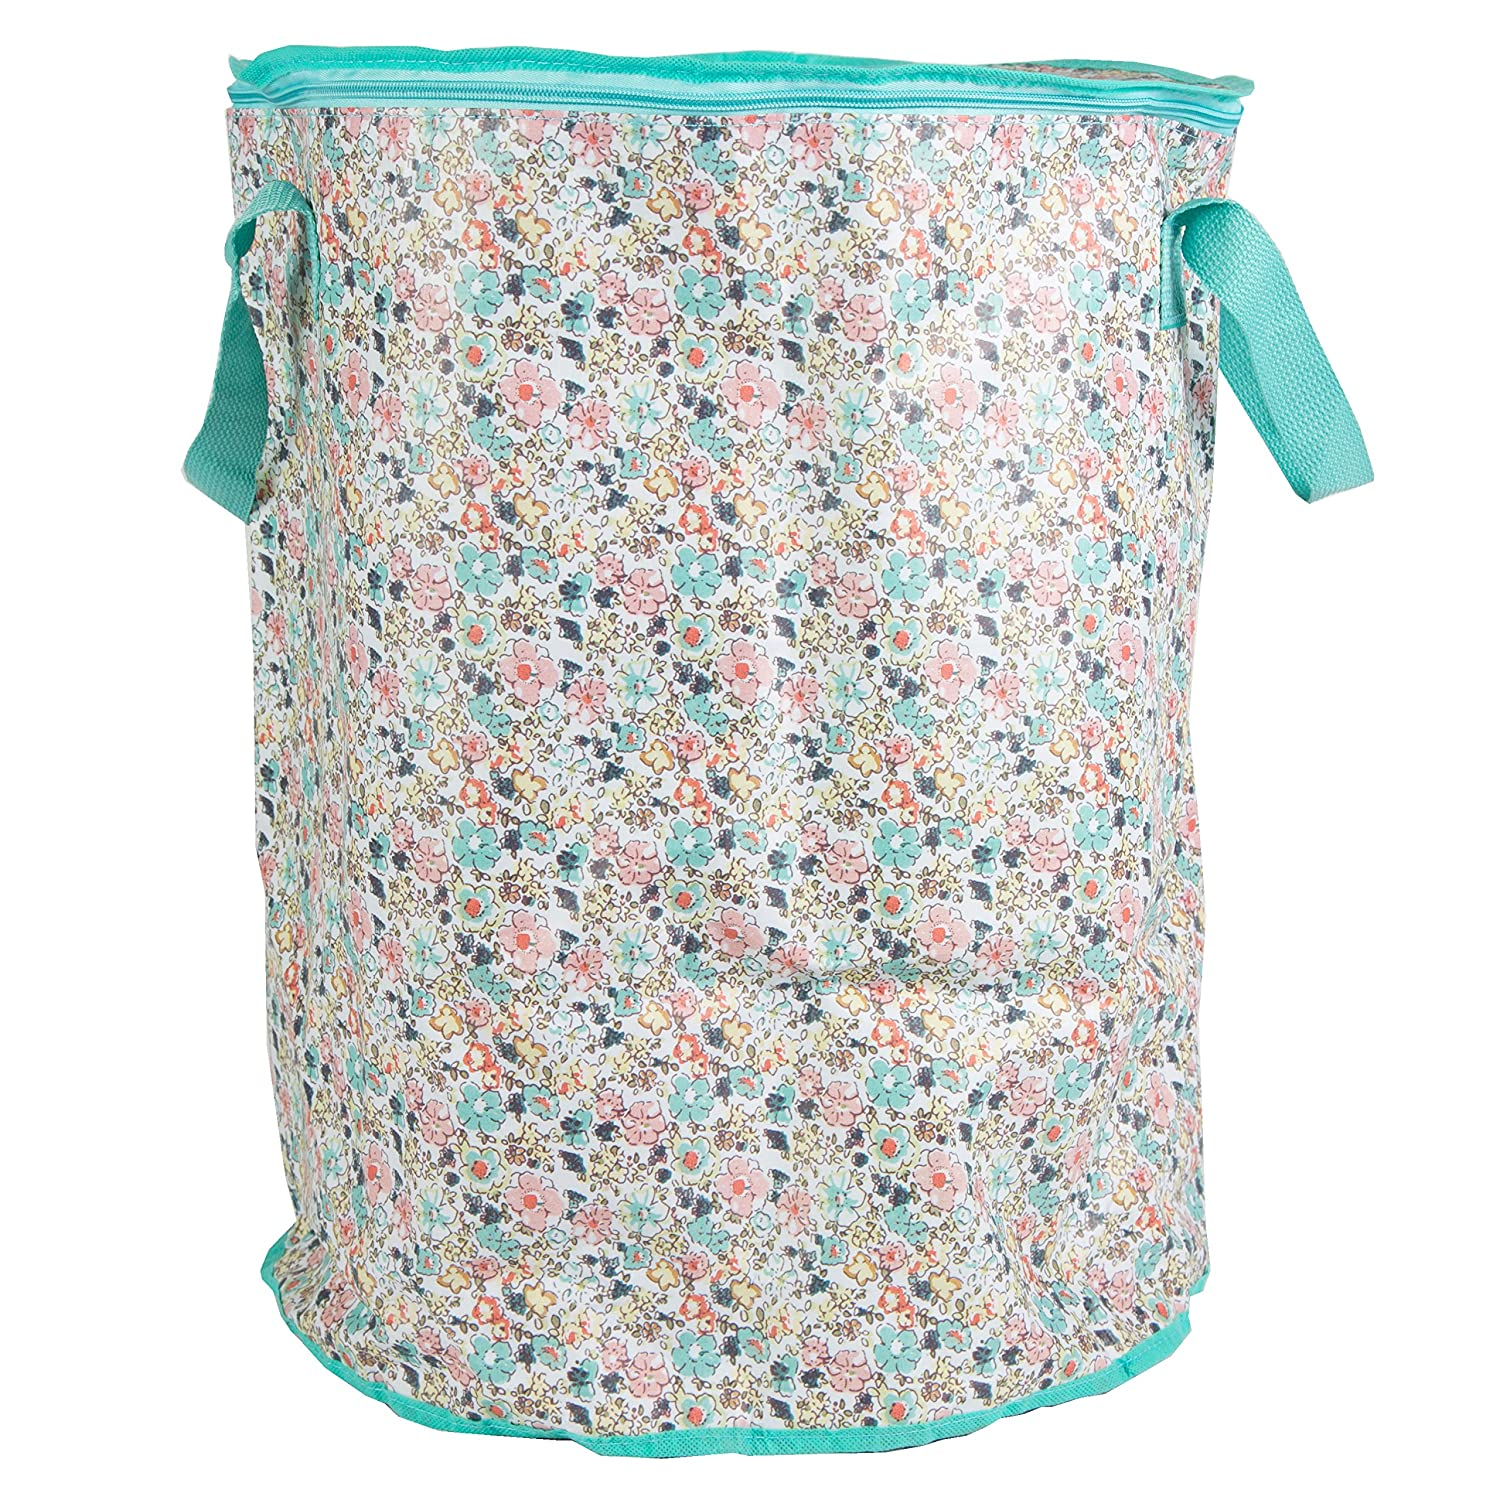 'Sass & Belle' Foldable Laundry Basket Flowers